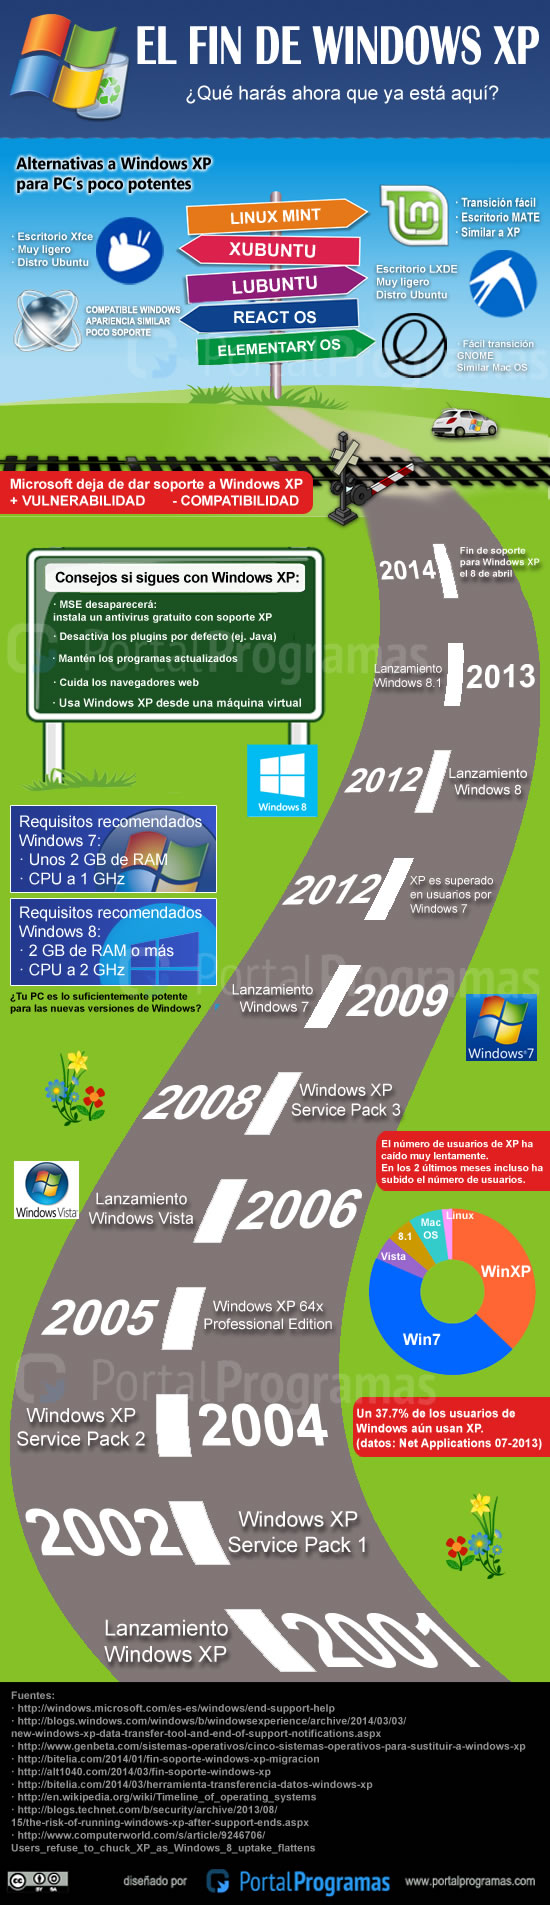 El fin de Windows XP se acerca ¿Y a hora qué hago? [Infografía] - fin-windows-xp-infografia